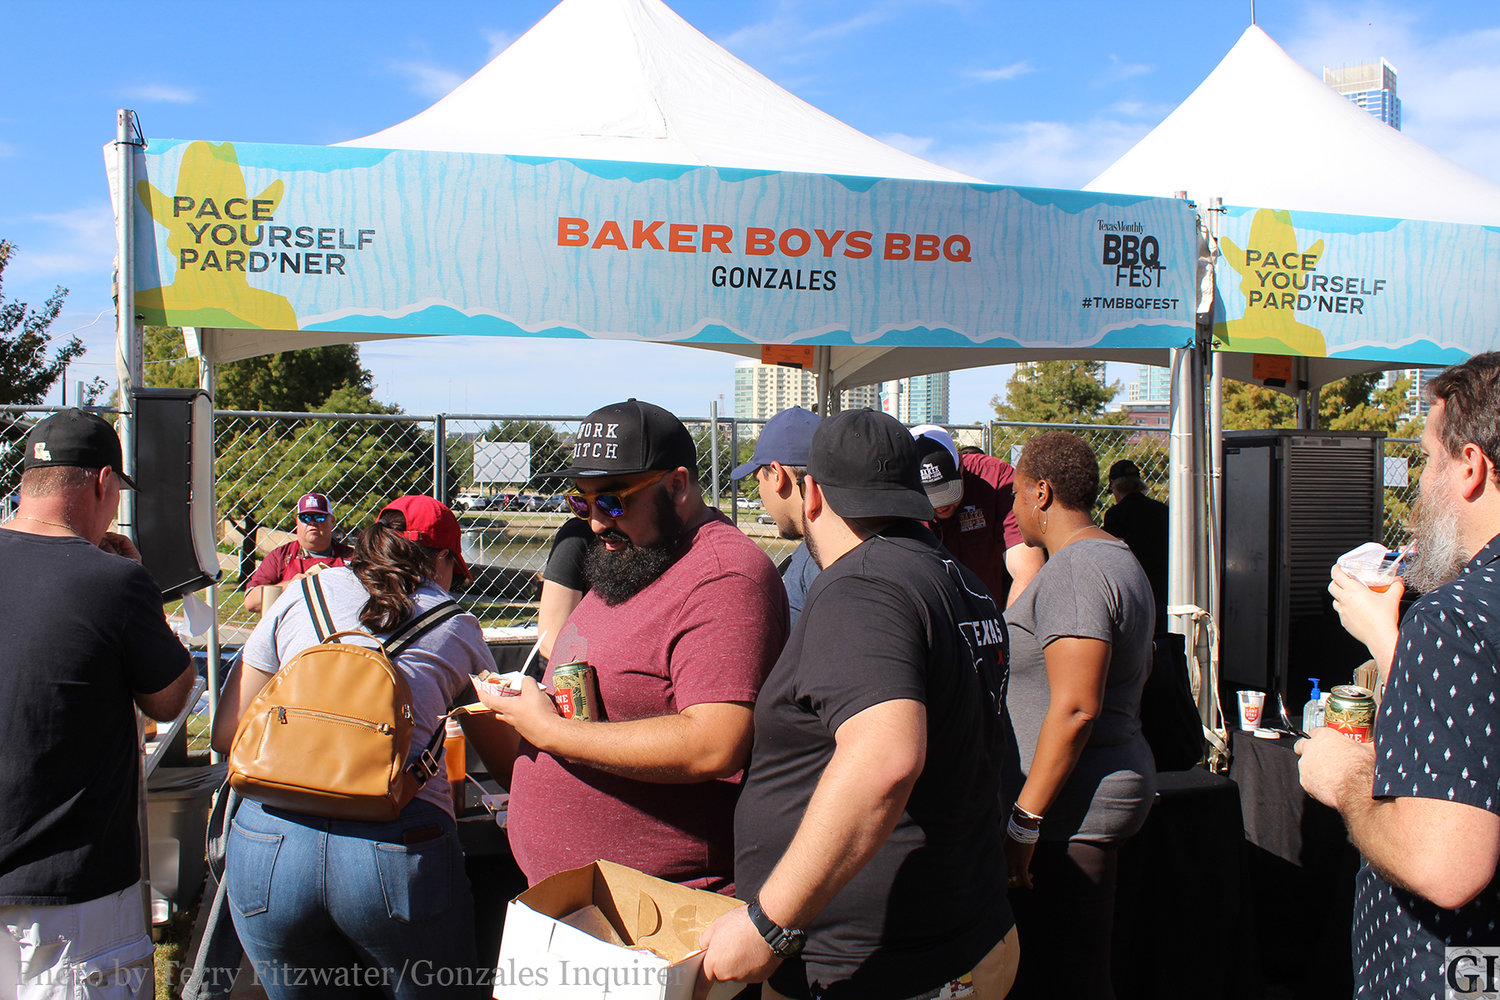 Spectators from all over Texas flocked to the Gonzales' Baker Boys Barbecue on Sunday at the Austin BBQ Fest to sample turkey, sausage and rice.